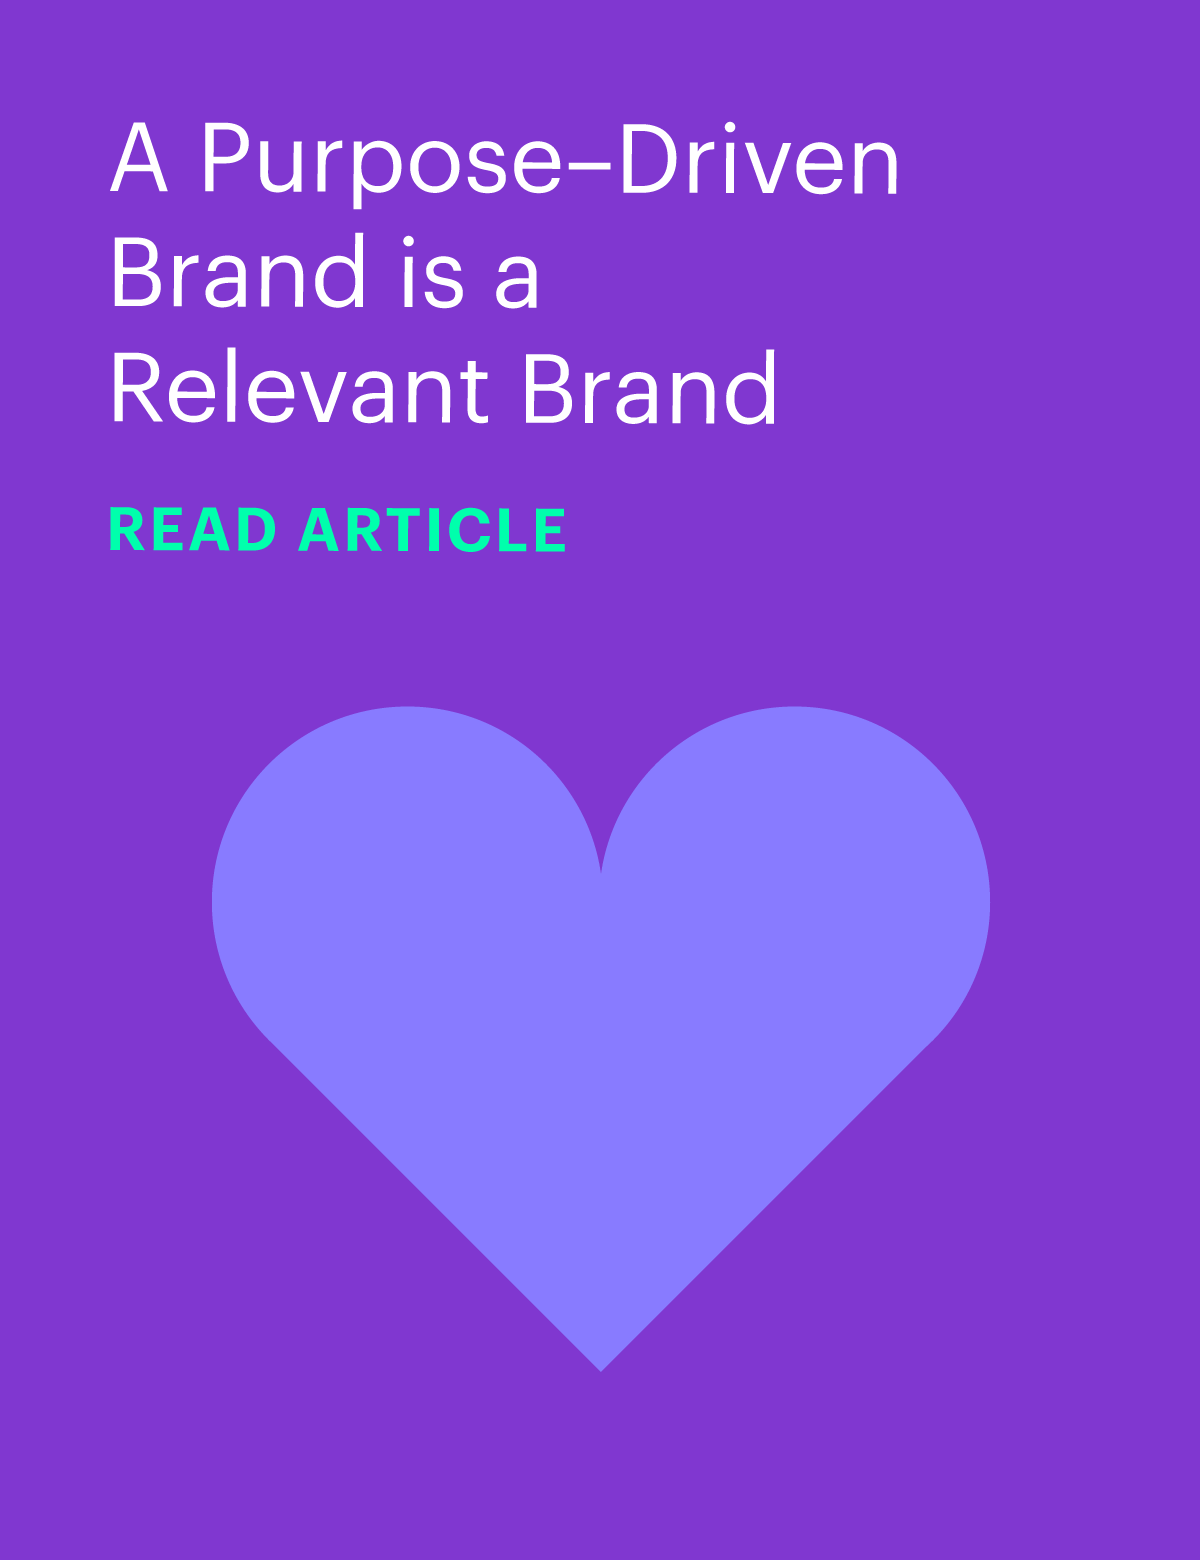 A Purpose-Driven Brand is a Relevant Brand